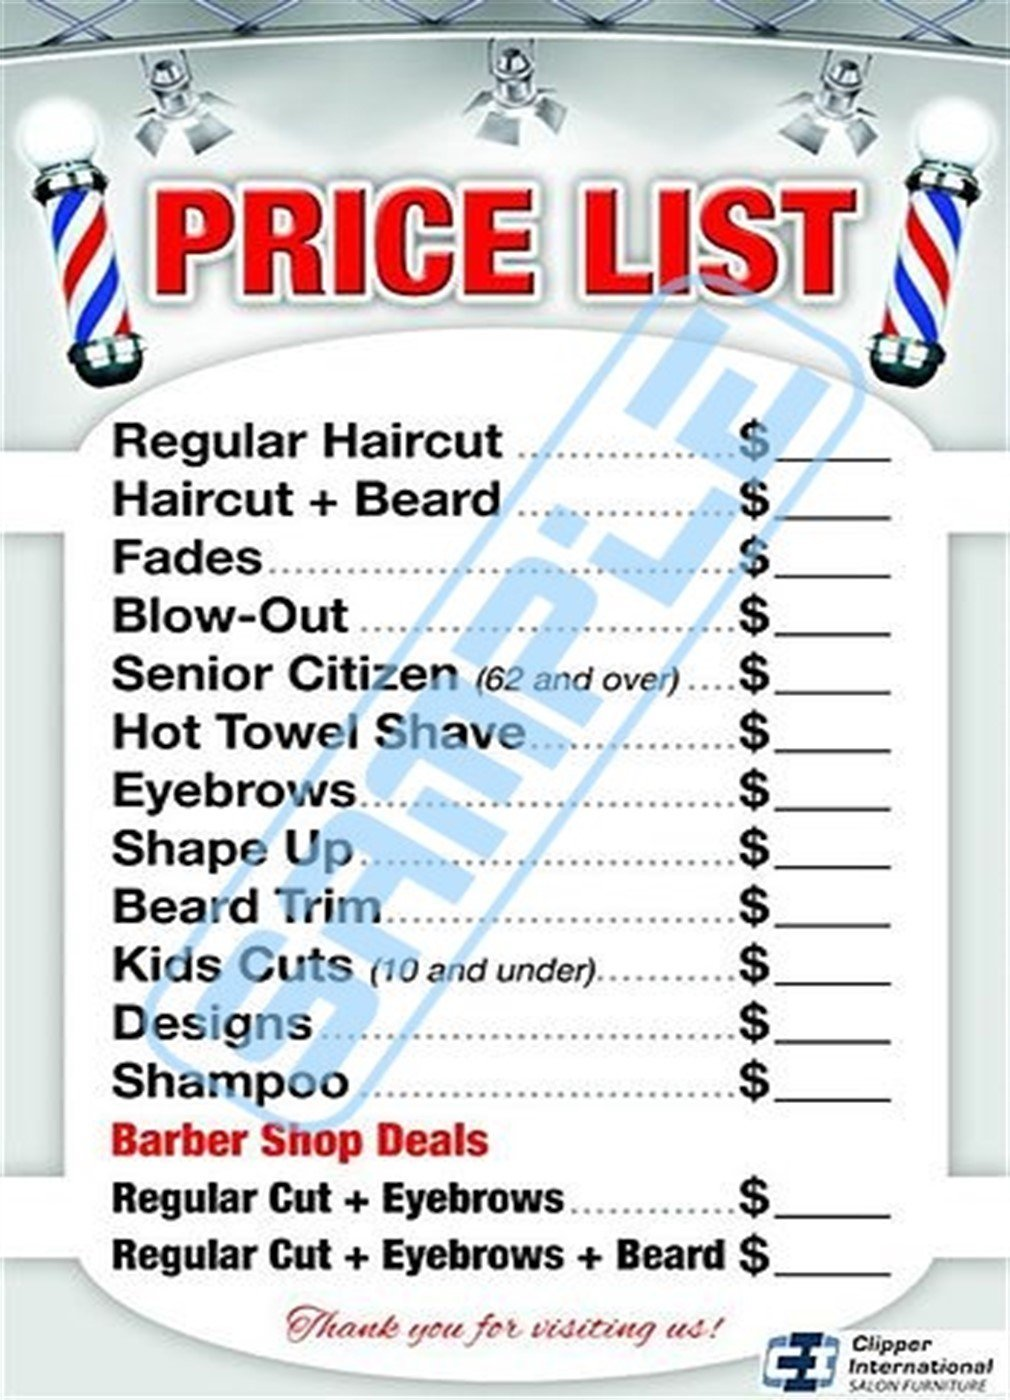 Barber Shop Price List by BARBERWALL - Barber Poster - Barber Shop Poster - 36 x 24 Laminated